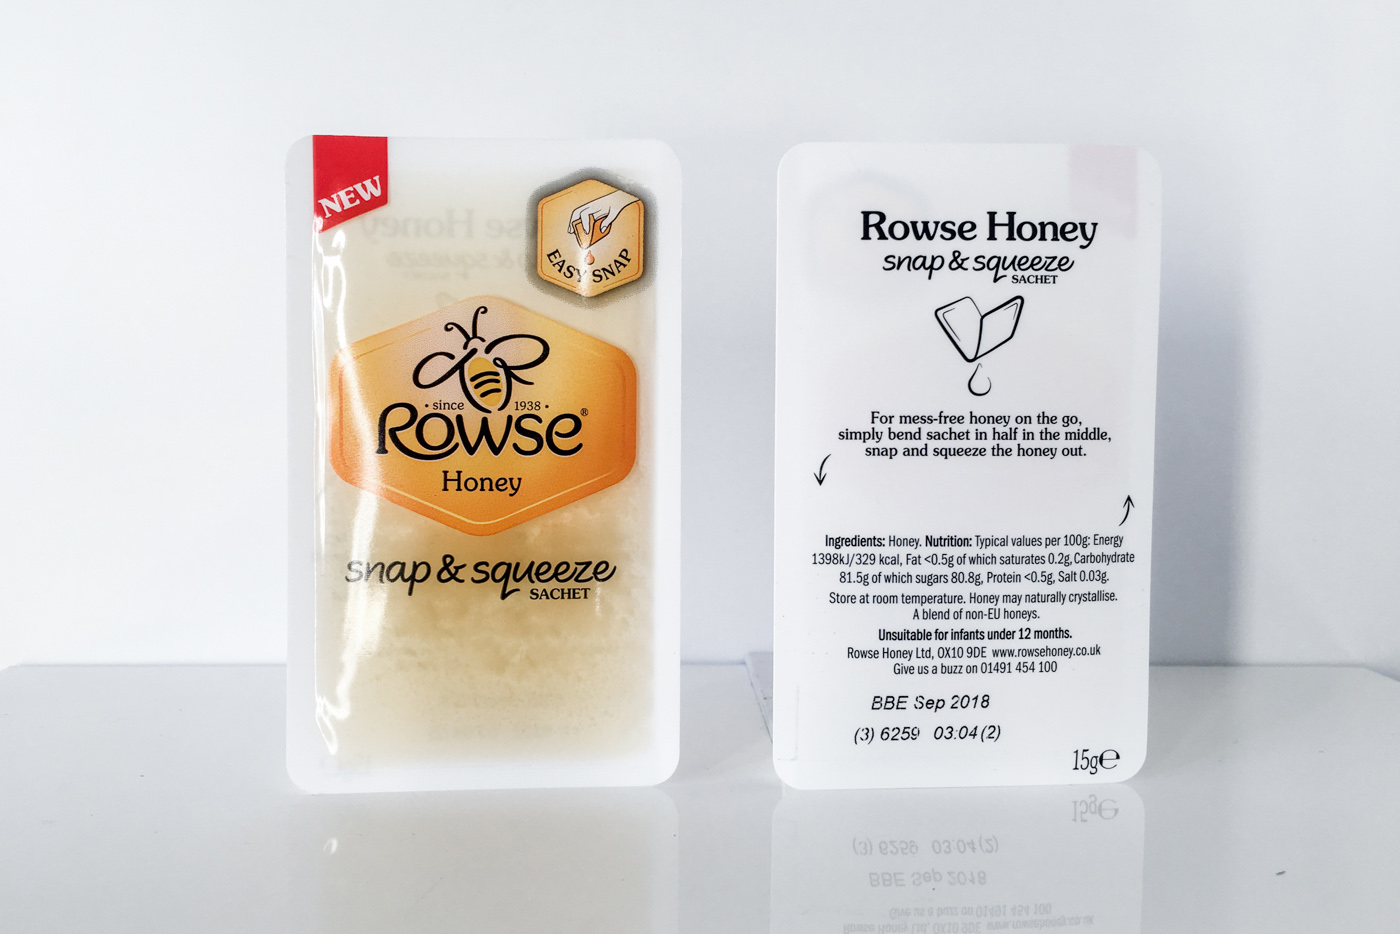 Rowse Honey Snap & Squeeze Easysnap one hand opening